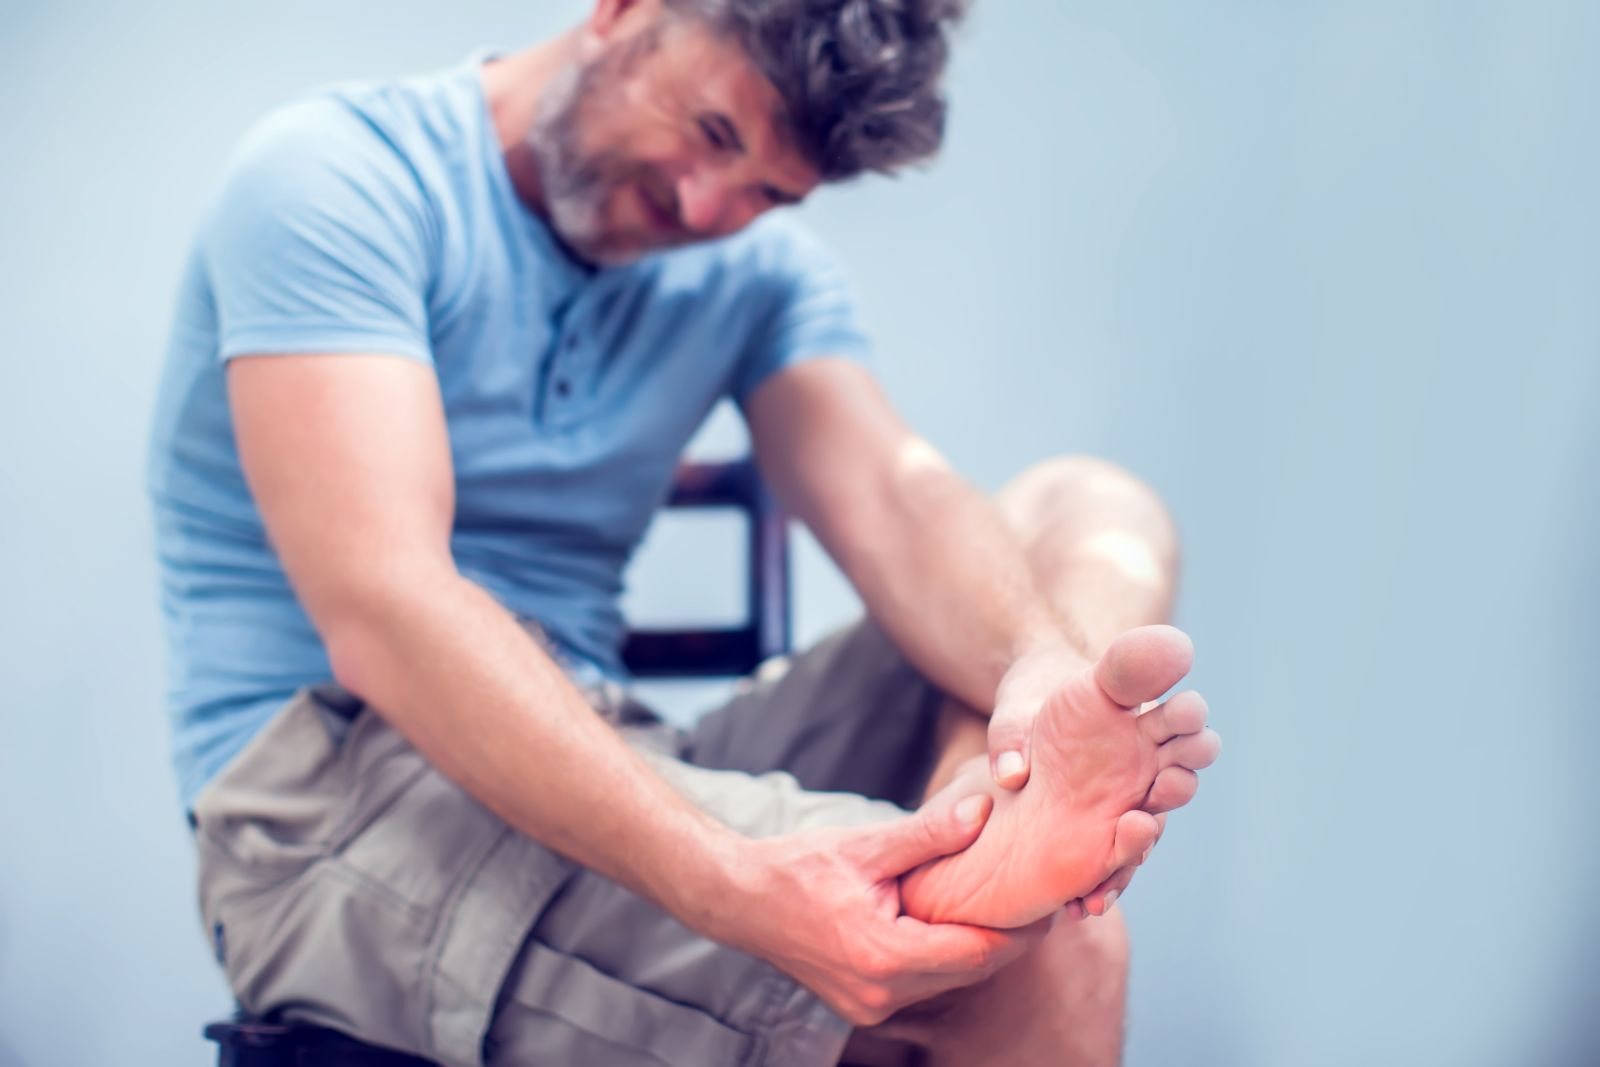 Man holding foot in pain